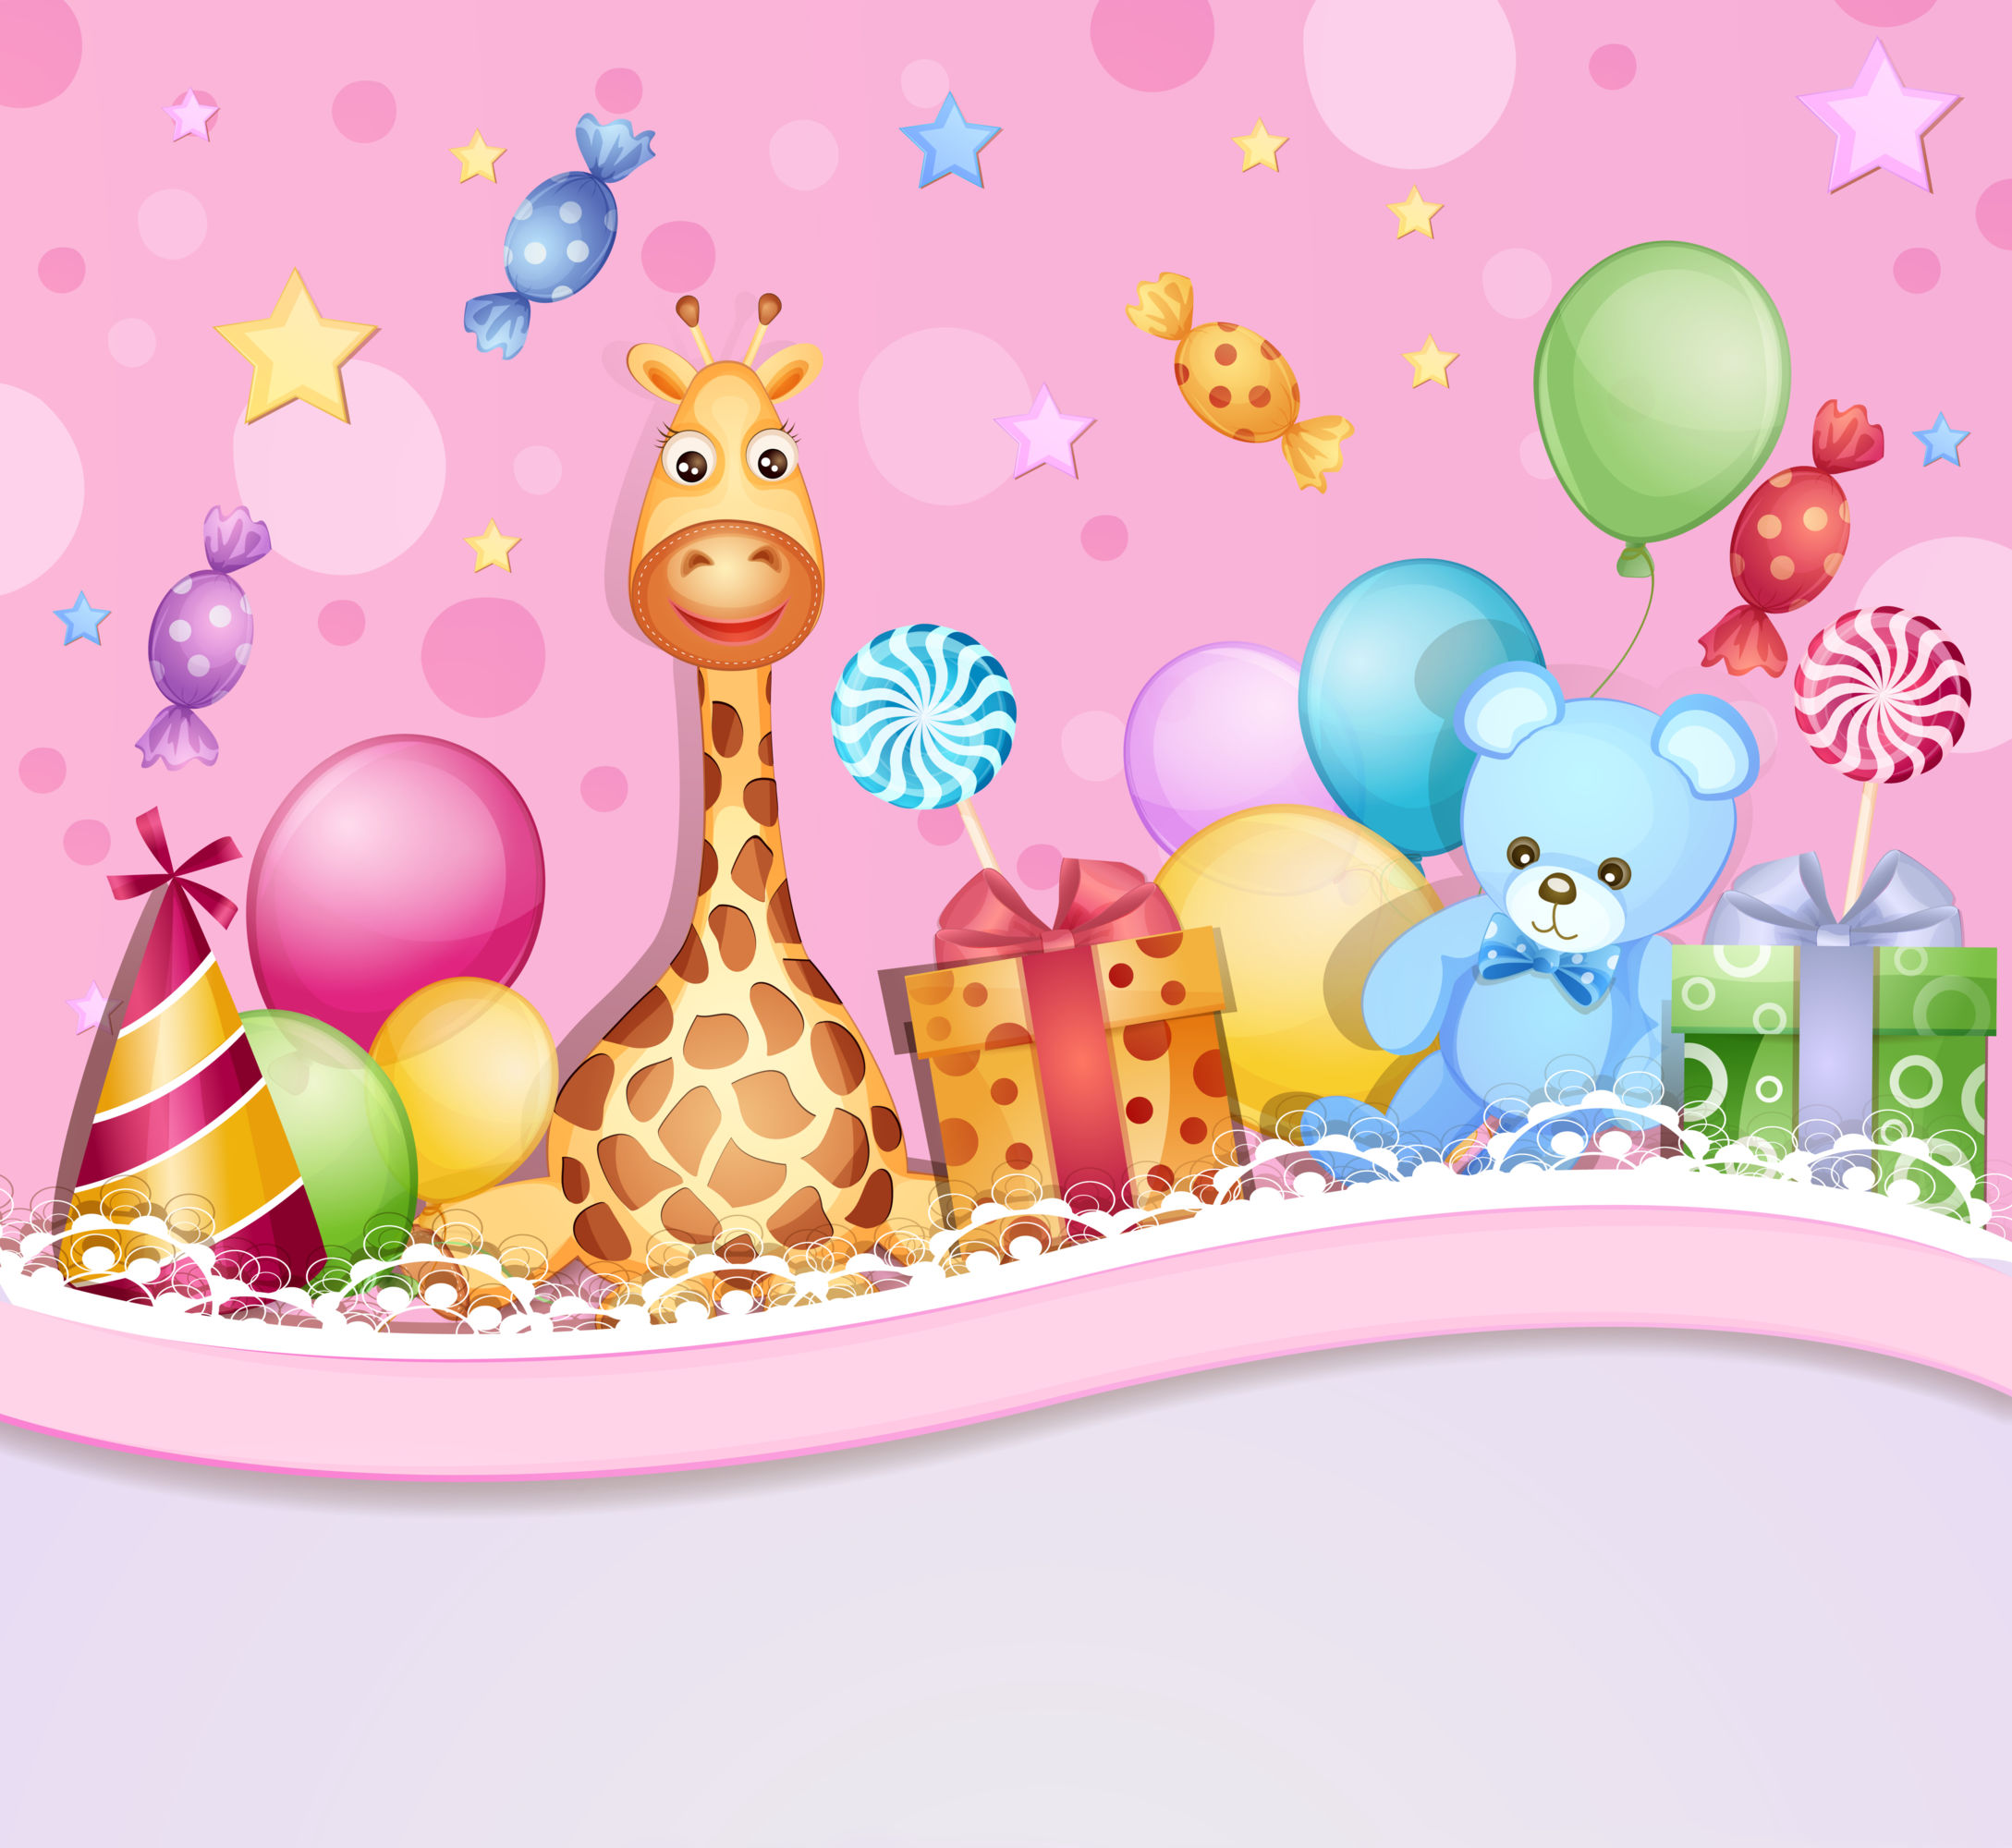 Baby (Backgrounds)